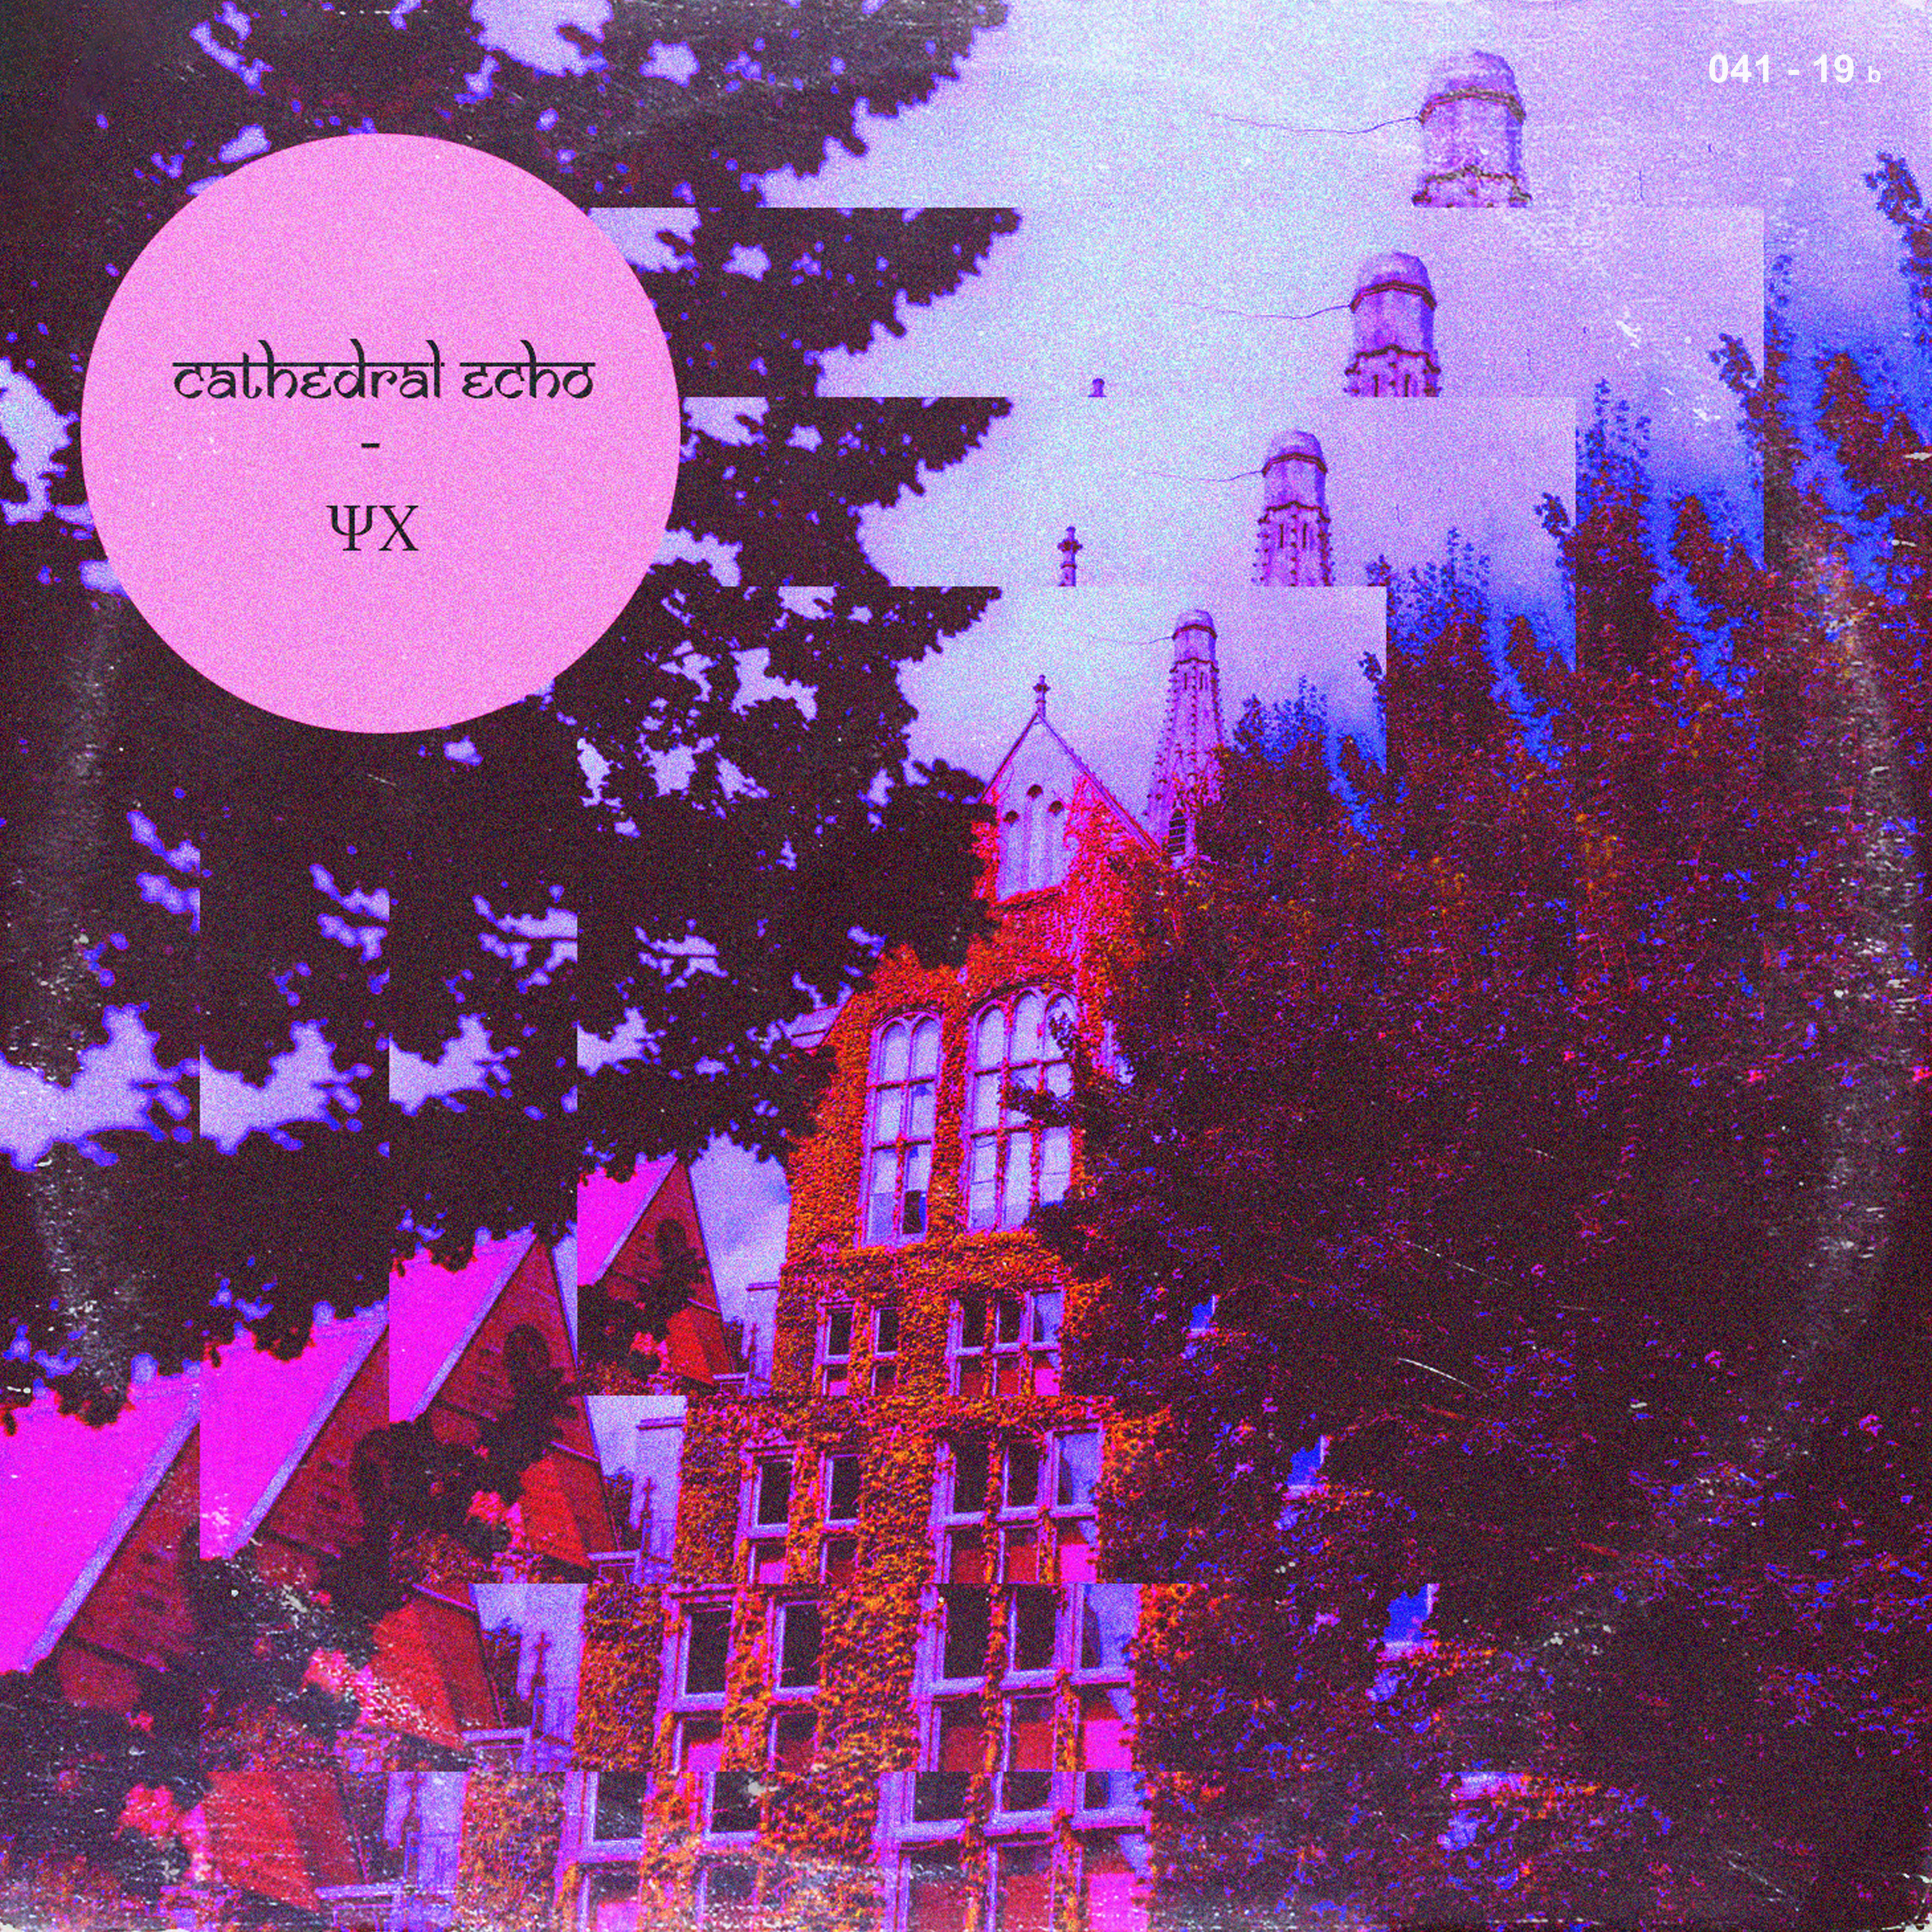 CATHEDRAL ECHO - ΨΧ